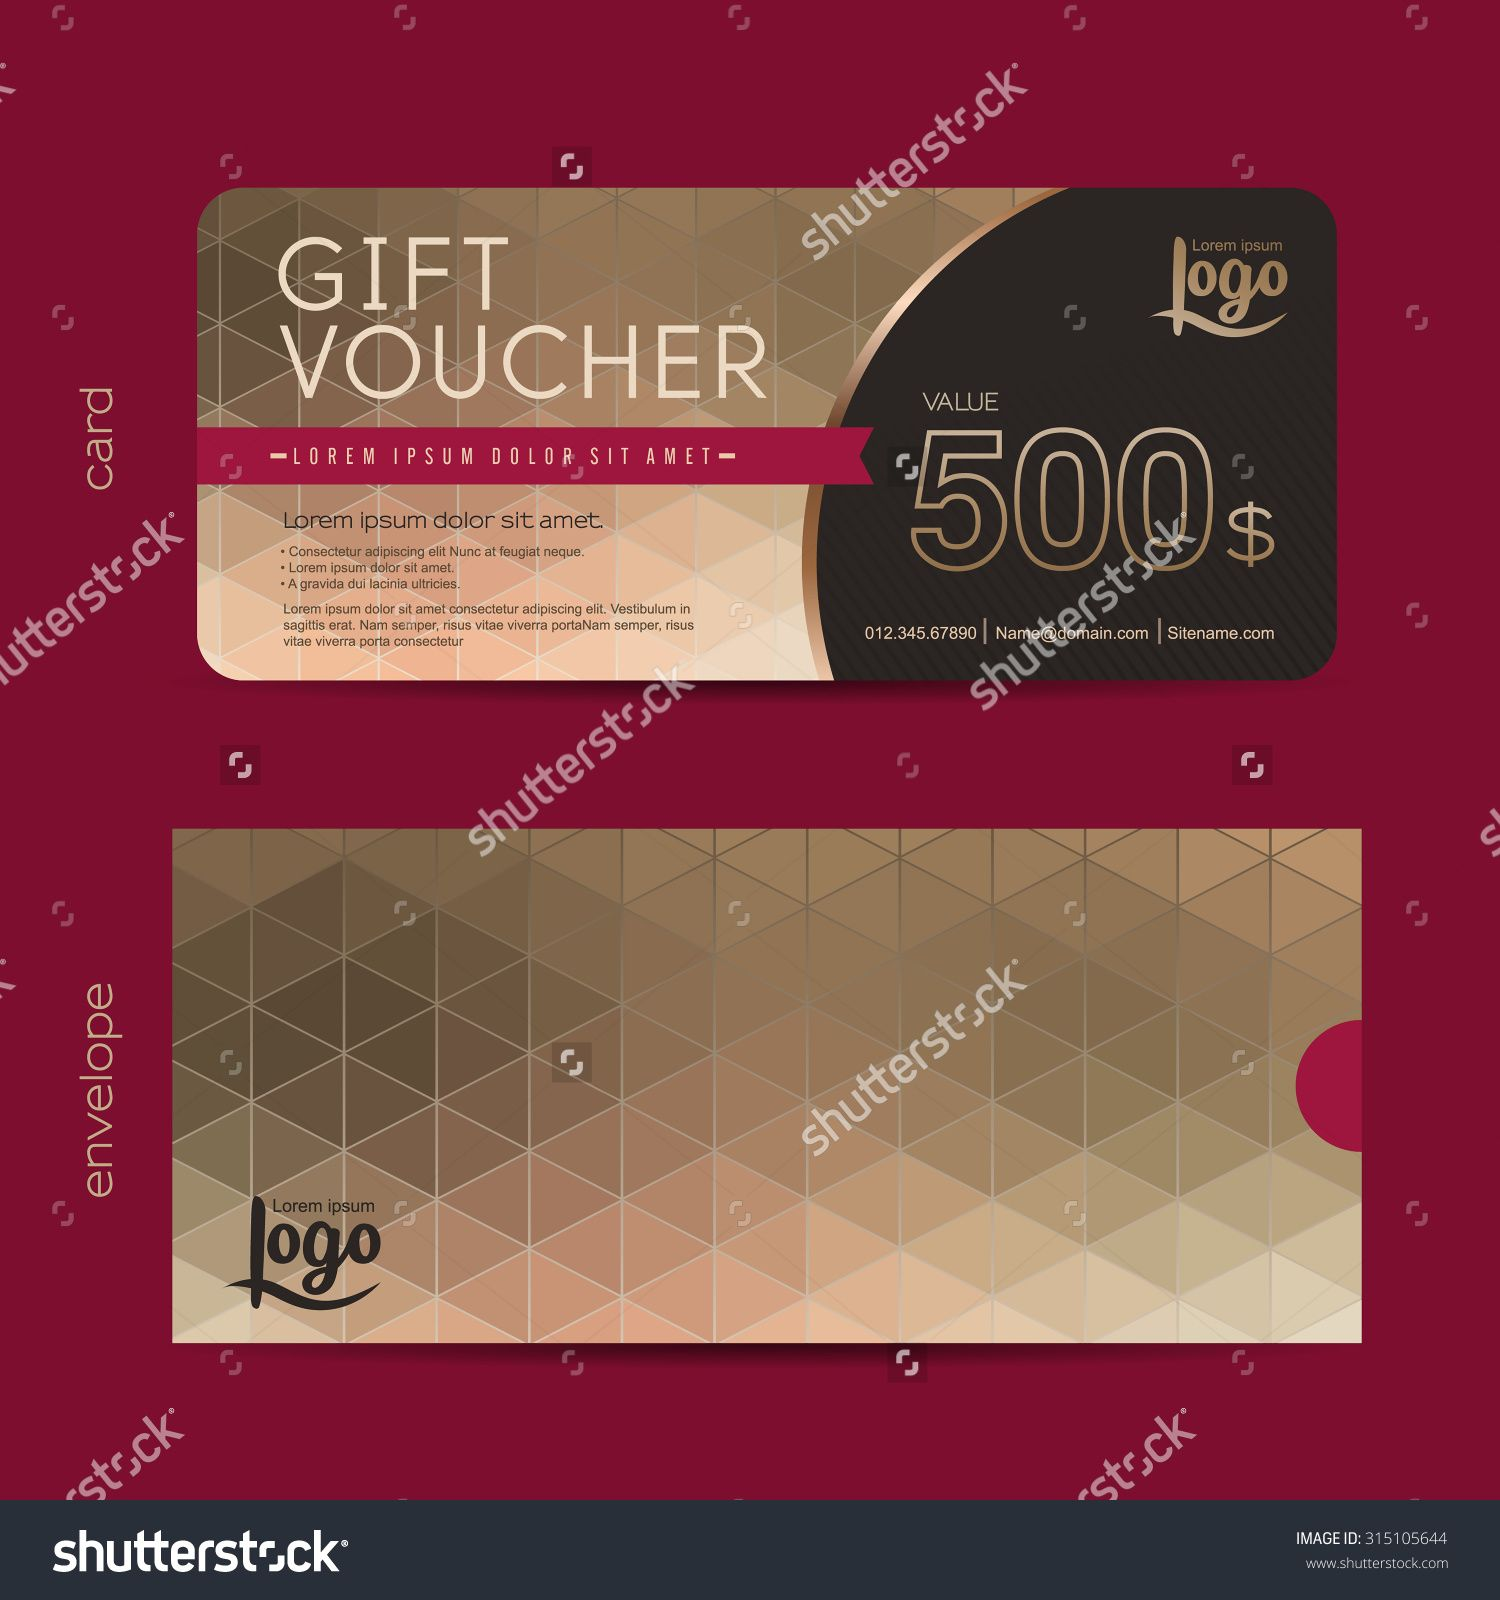 Gift voucher template with premium patterngift voucher gift voucher template with premium patterngift voucher certificate coupon design templatecollection gift yadclub Choice Image